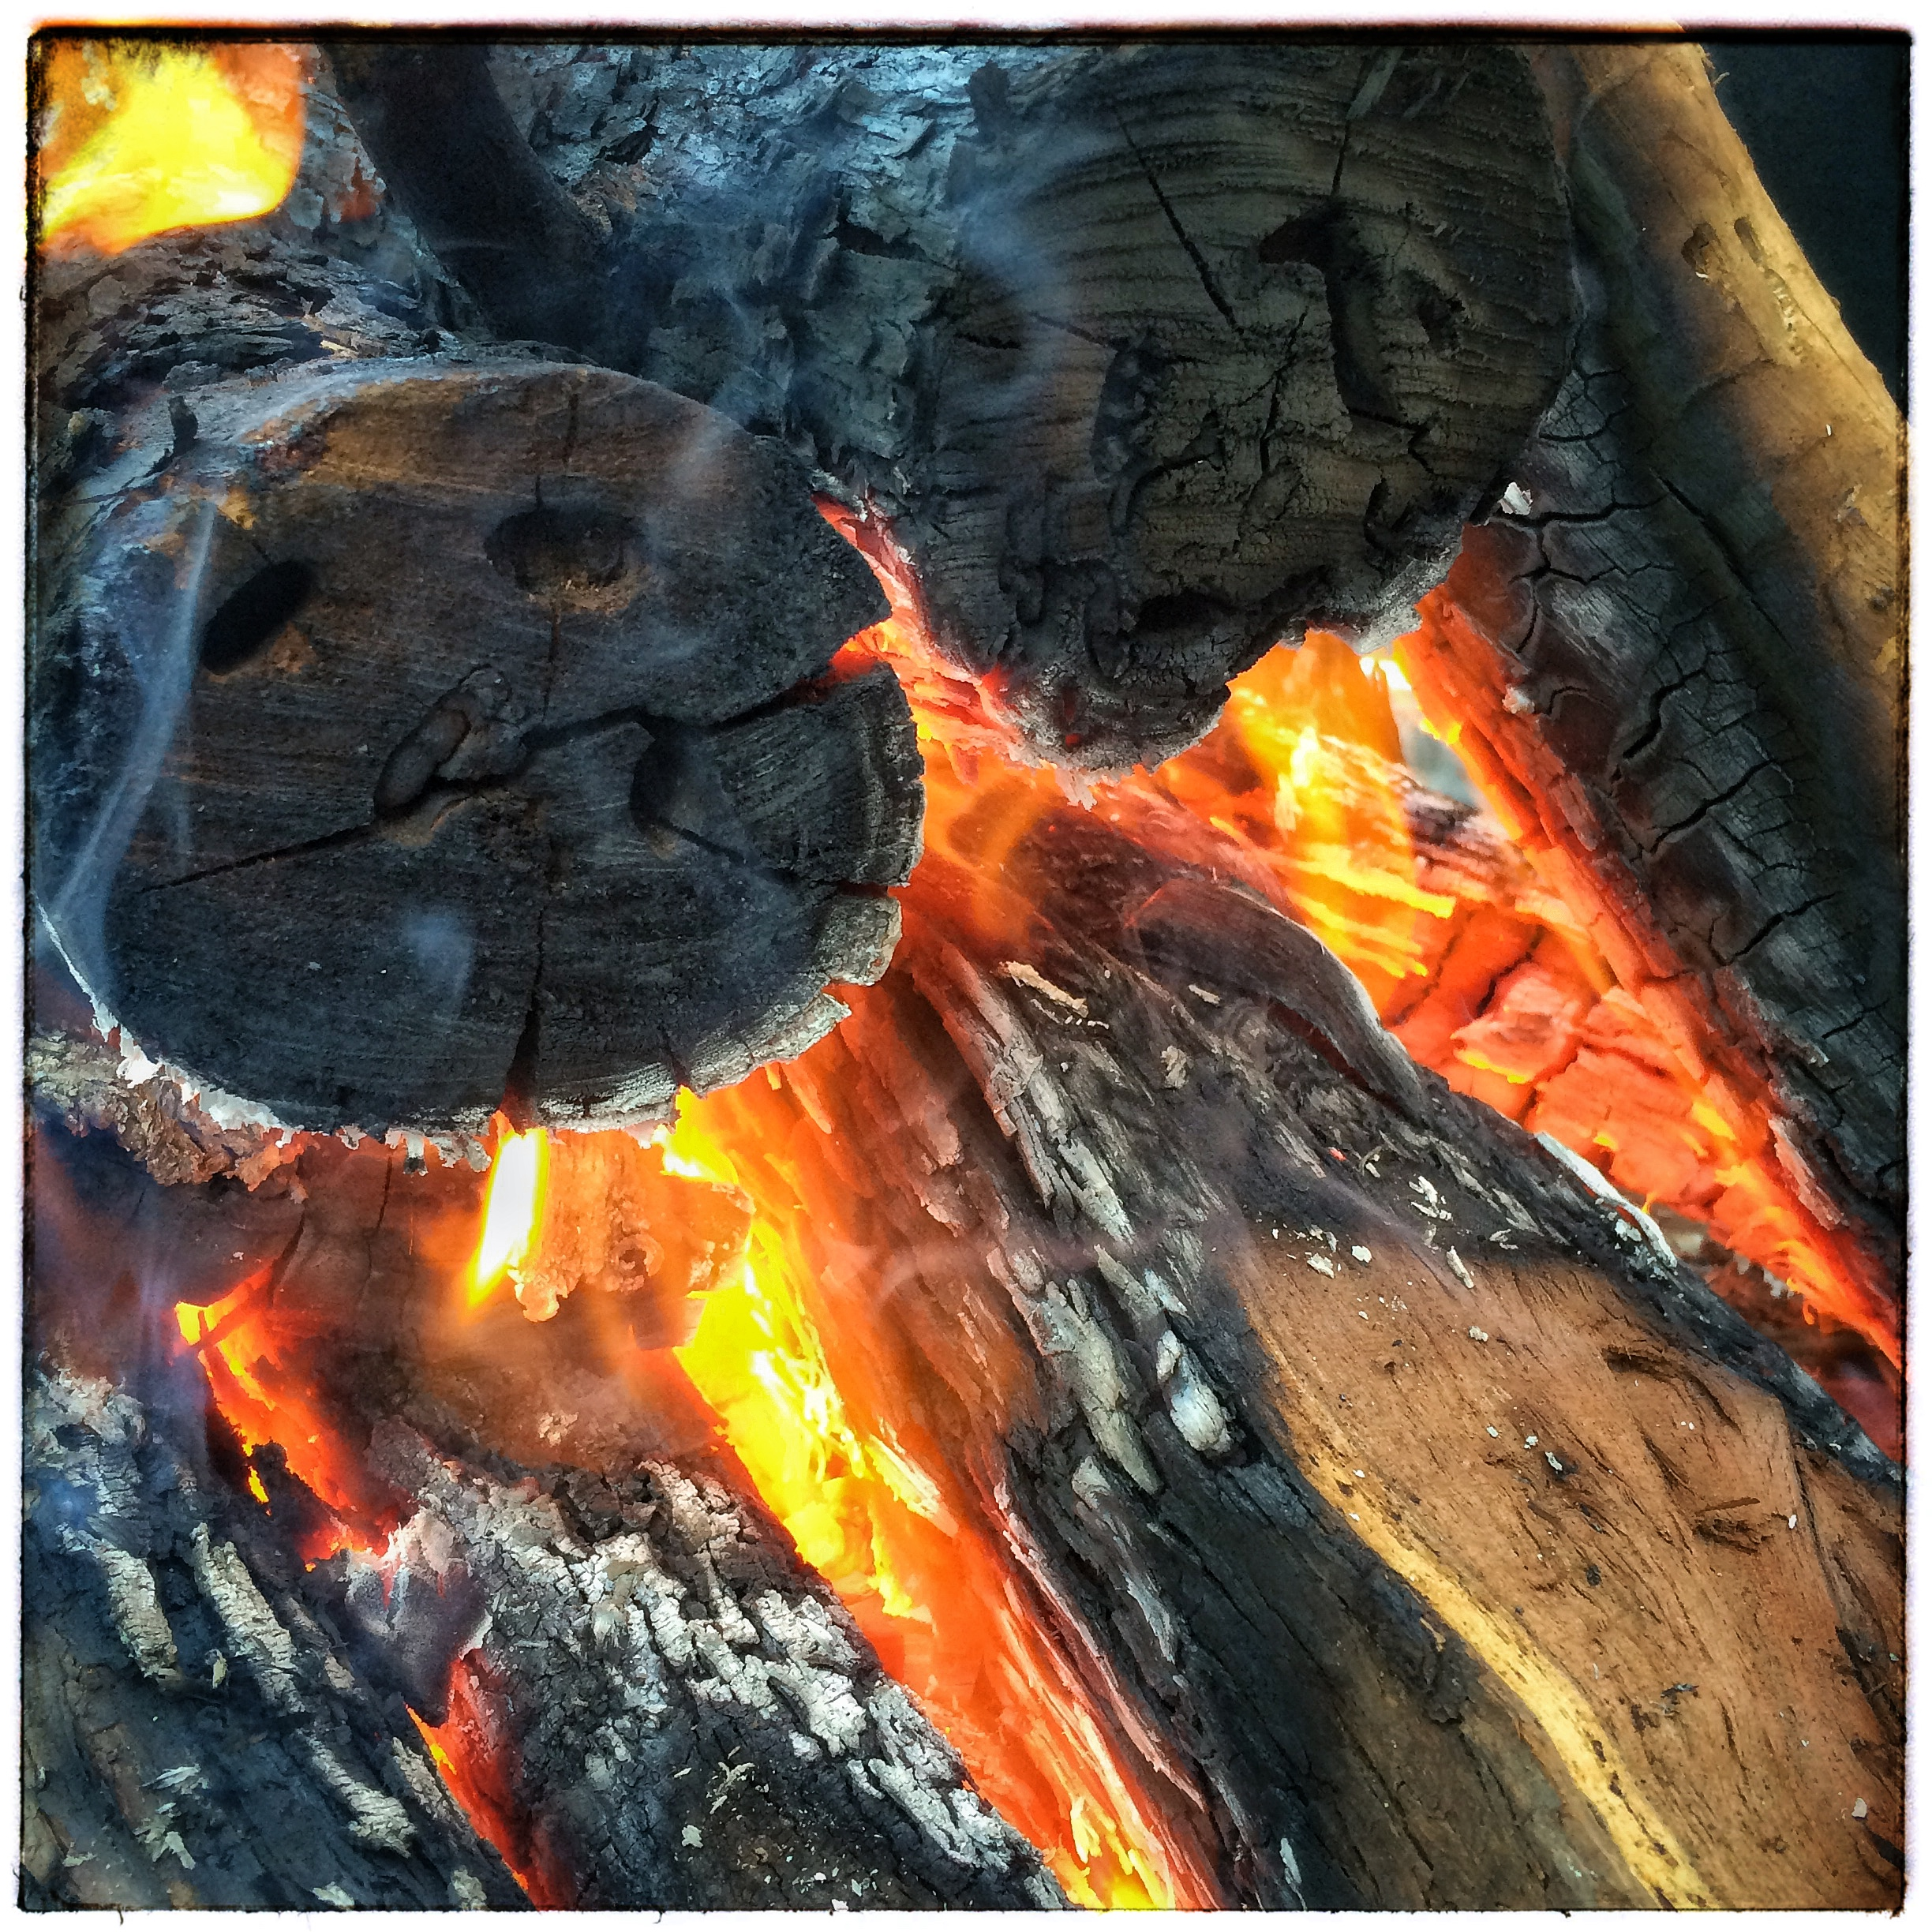 Mesquite Logs Catching Fire under the Grill